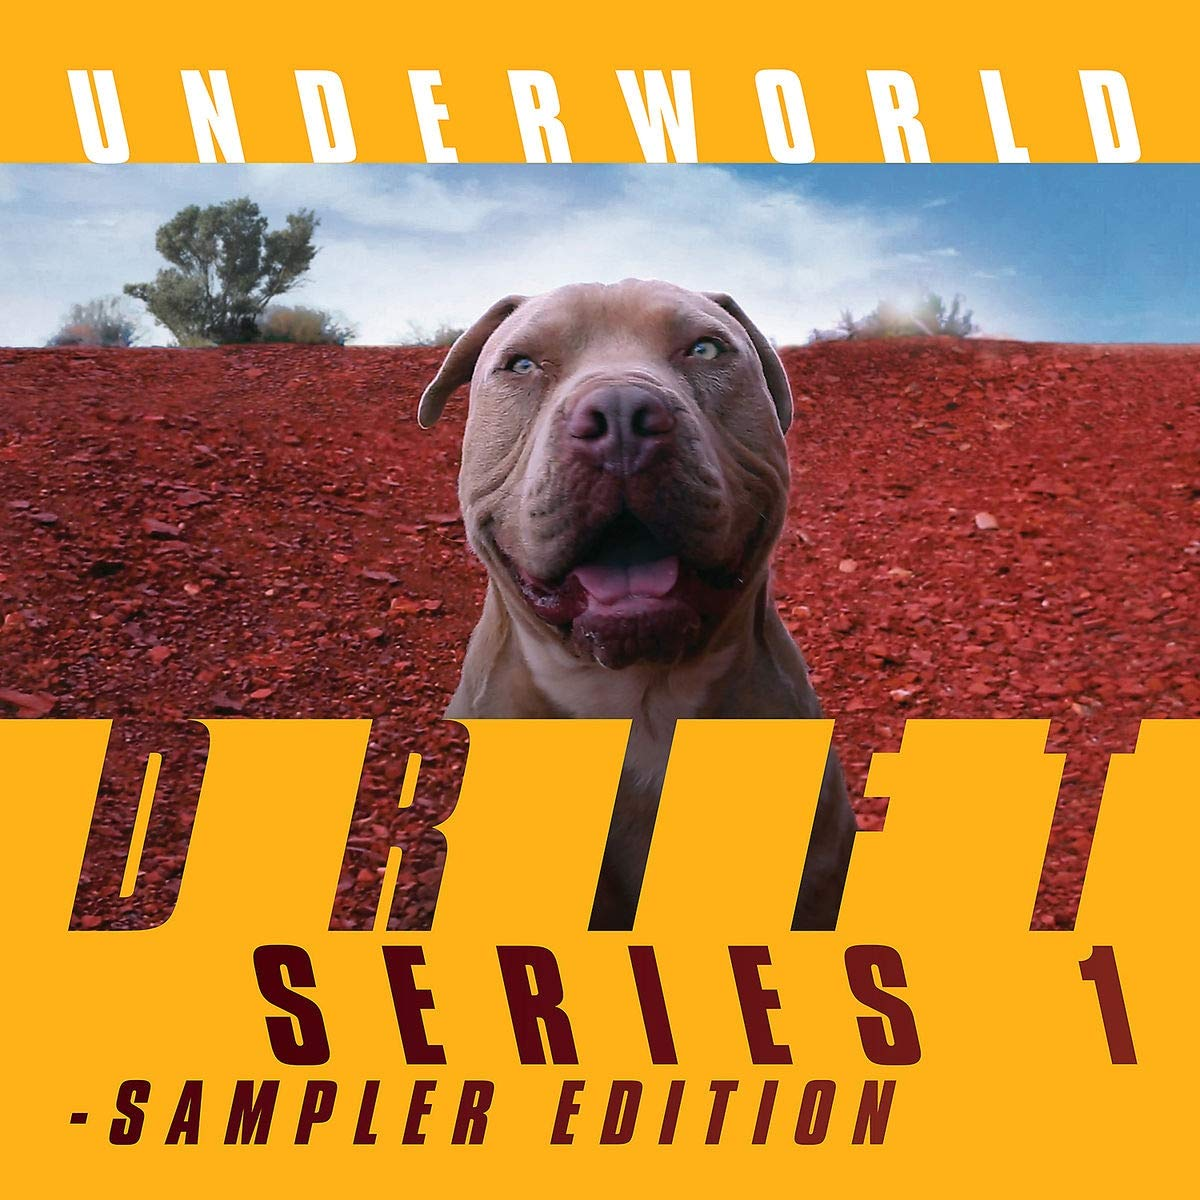 Underworld - DRIFT Series 1 Sampler Edition [LP]